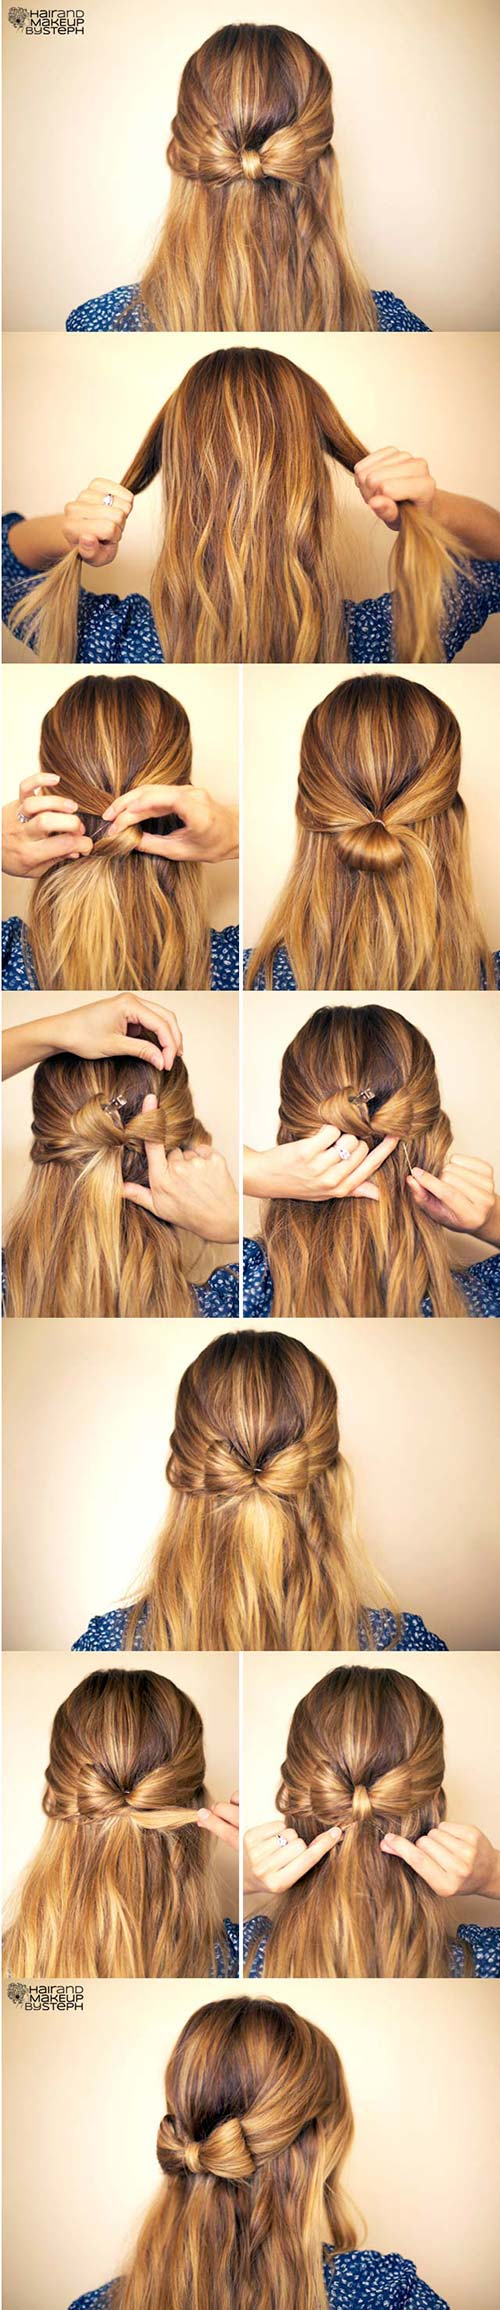 Half-Up-Bow Awesome Hairstyles For Girls With Long Hair